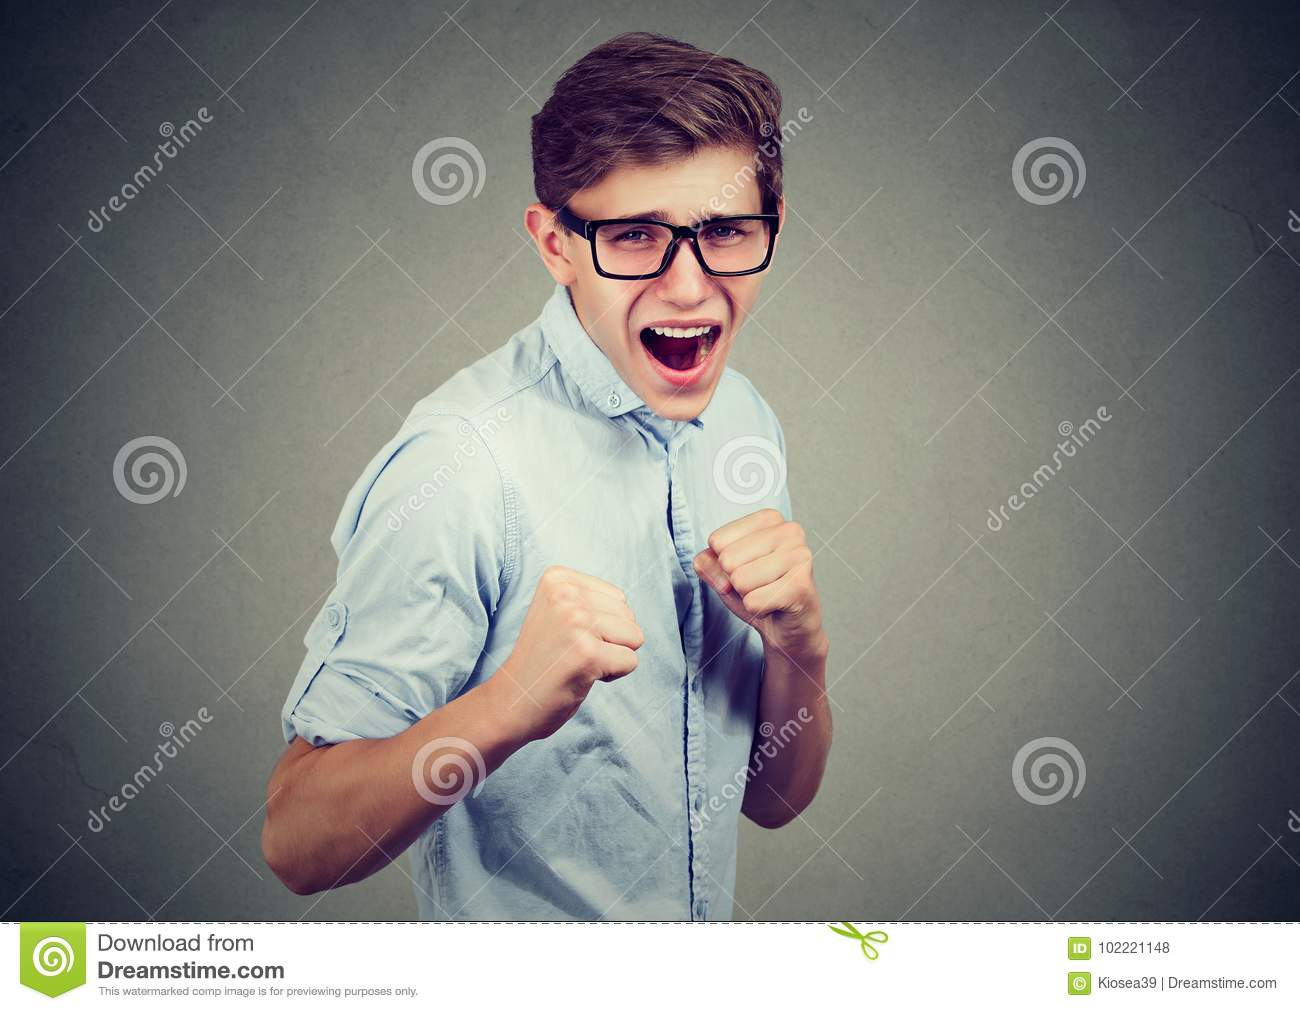 Man in rage threatening to punch someone with fists